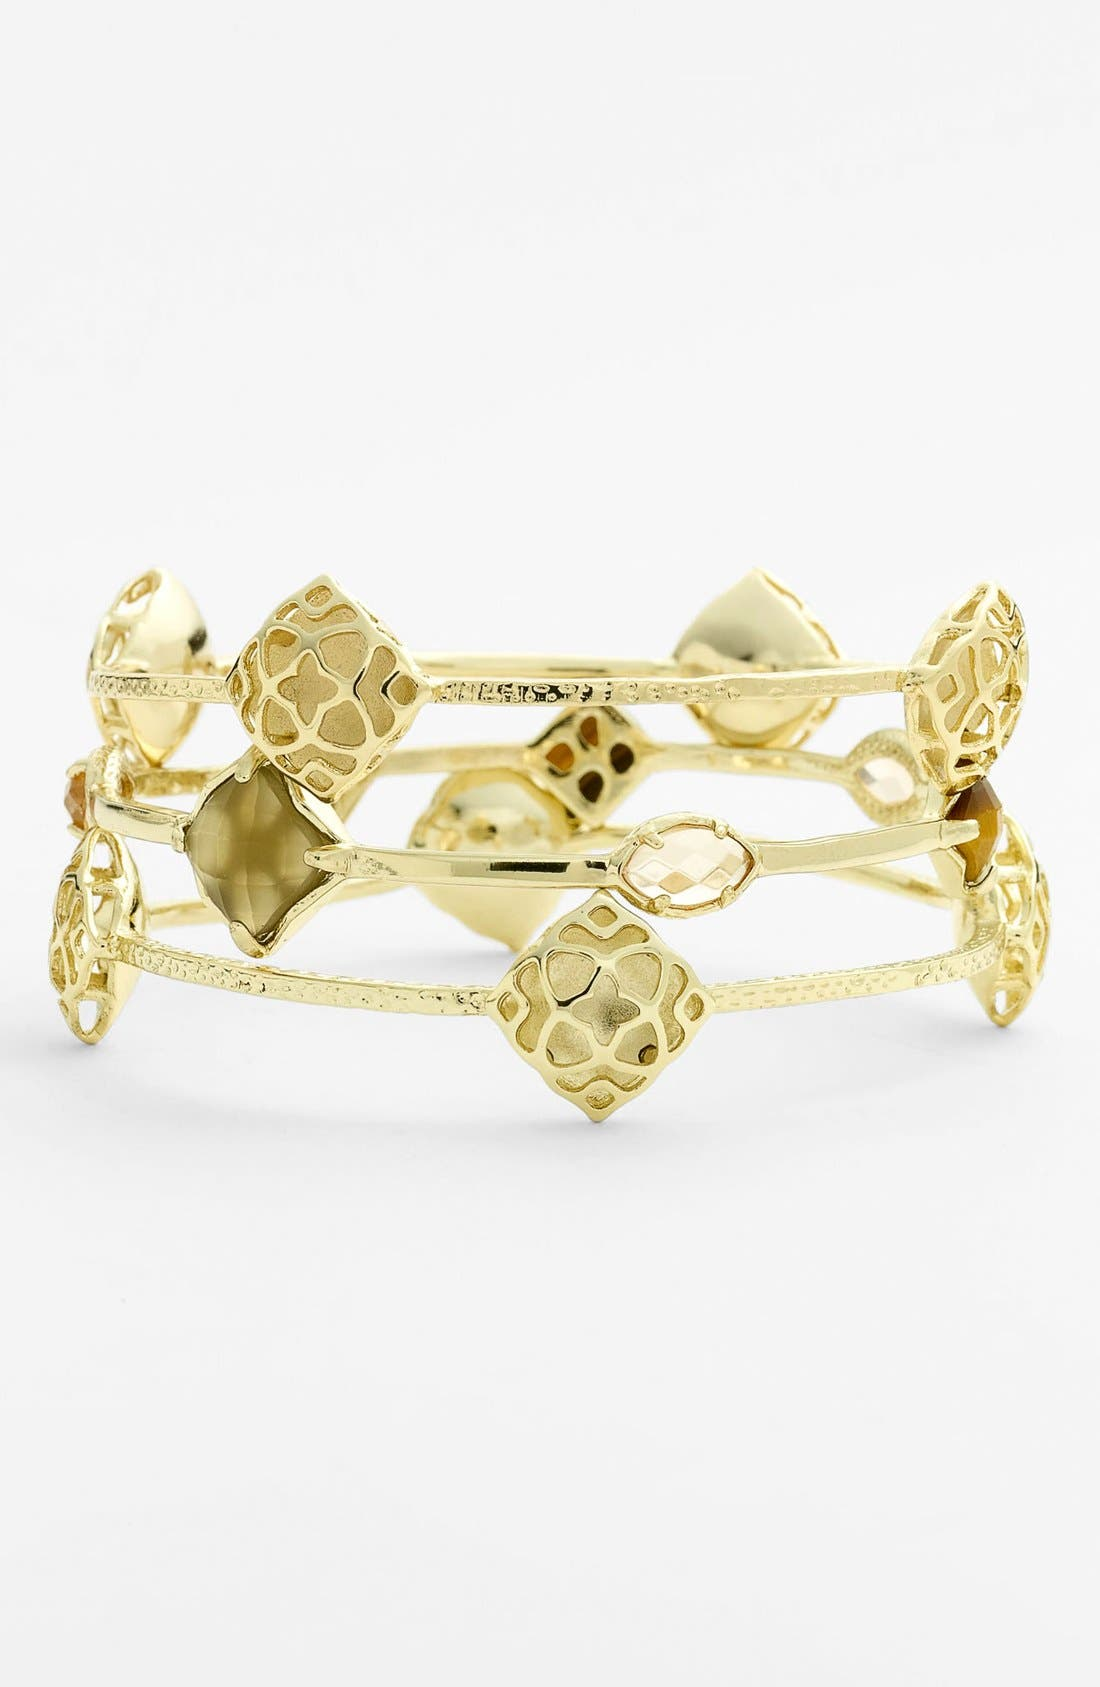 Main Image - Kendra Scott 'Island Escapade - Marty' Station Bangles (Set of 3) (Nordstrom Exclusive)